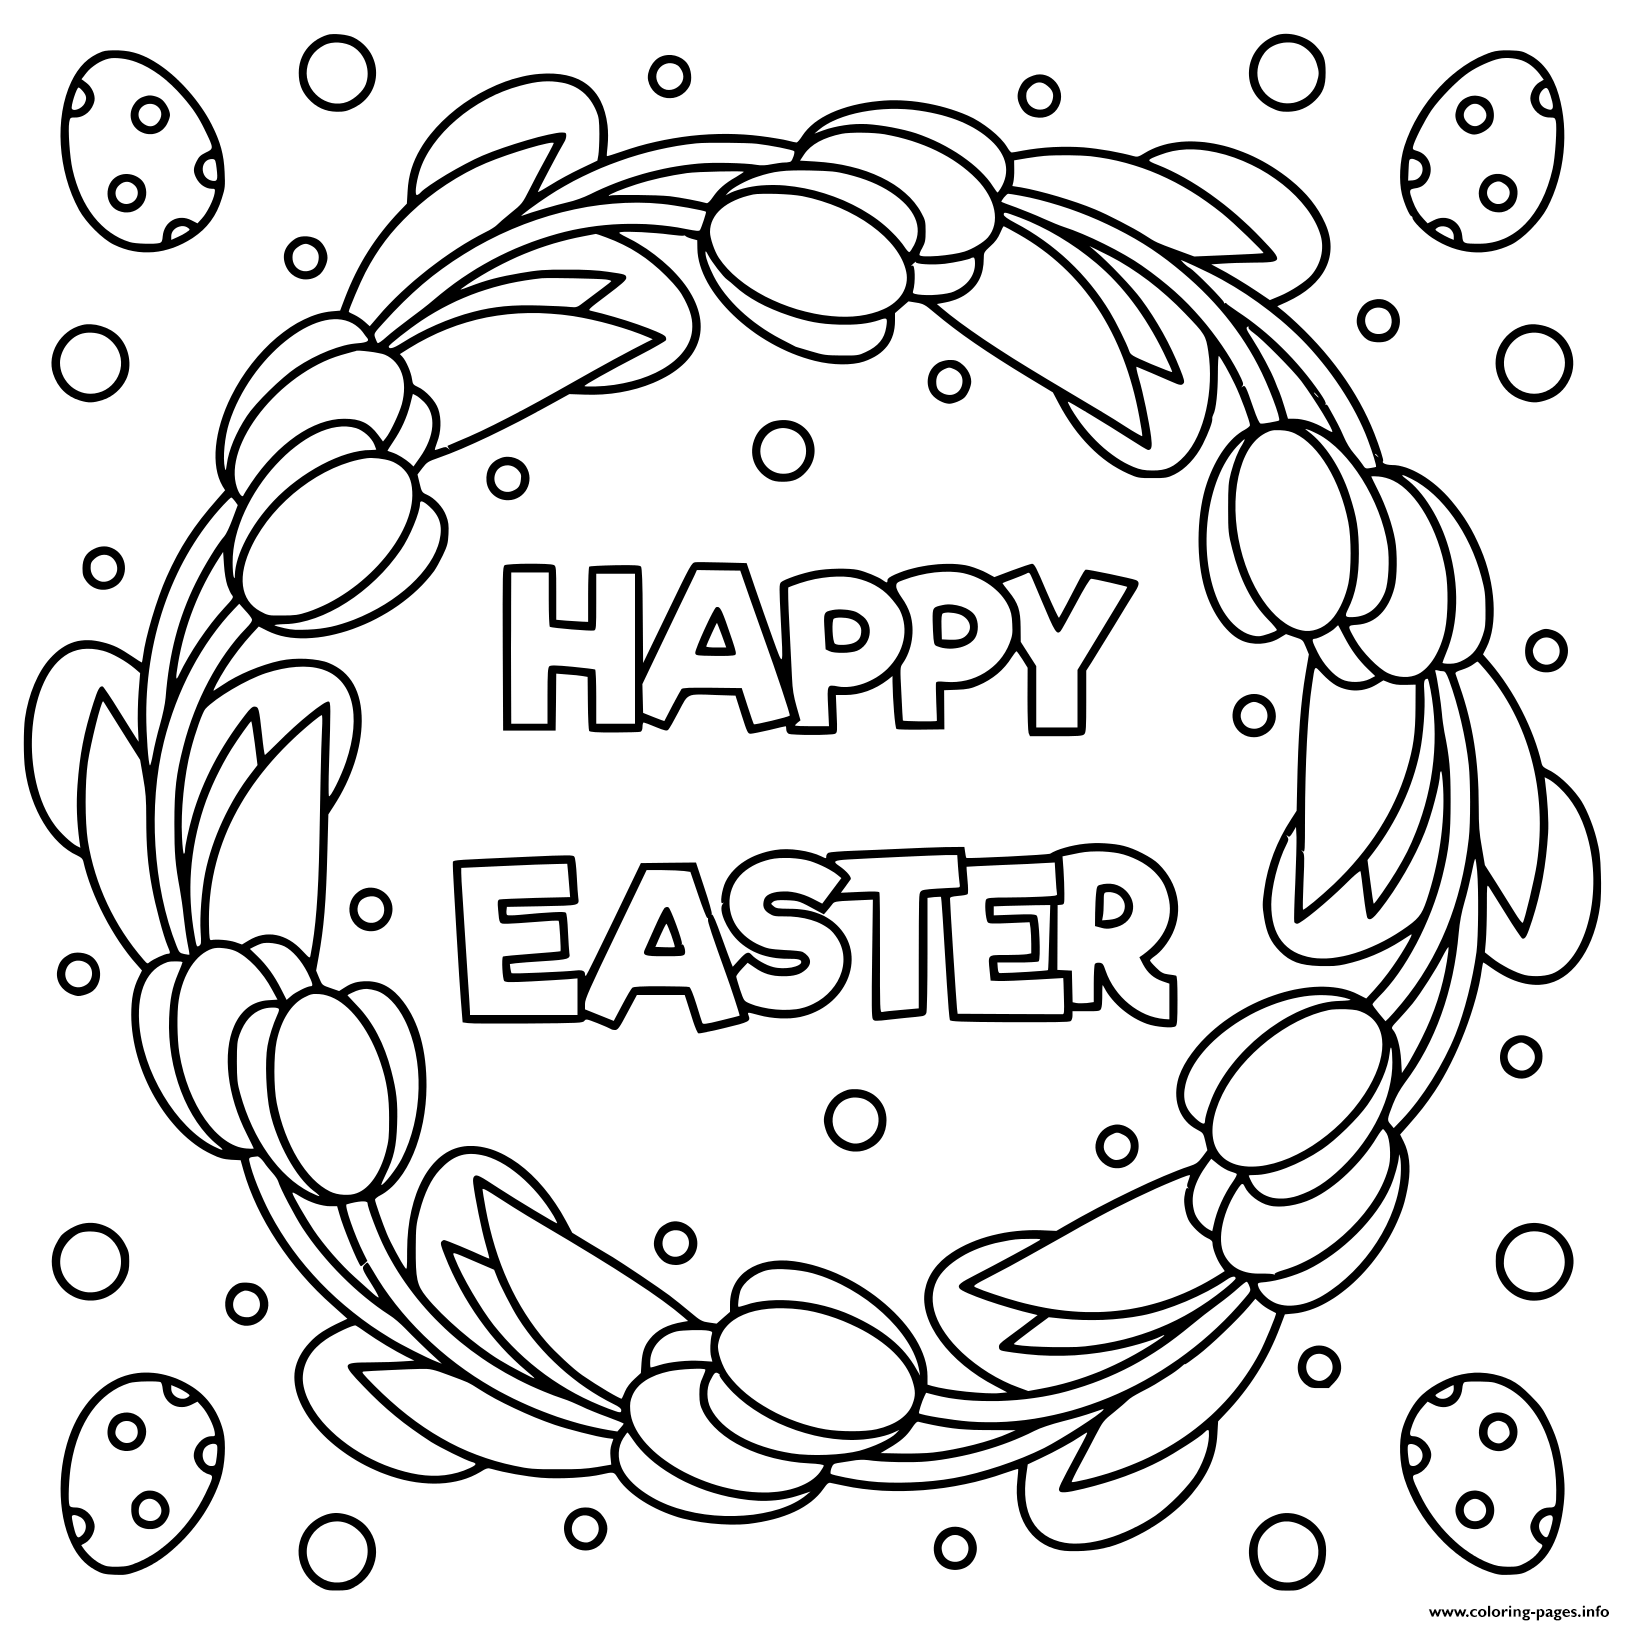 Print Happy Easter Black And White Illustration Coloring Pages Easter Coloring Pages Easter Coloring Book Coloring Pages